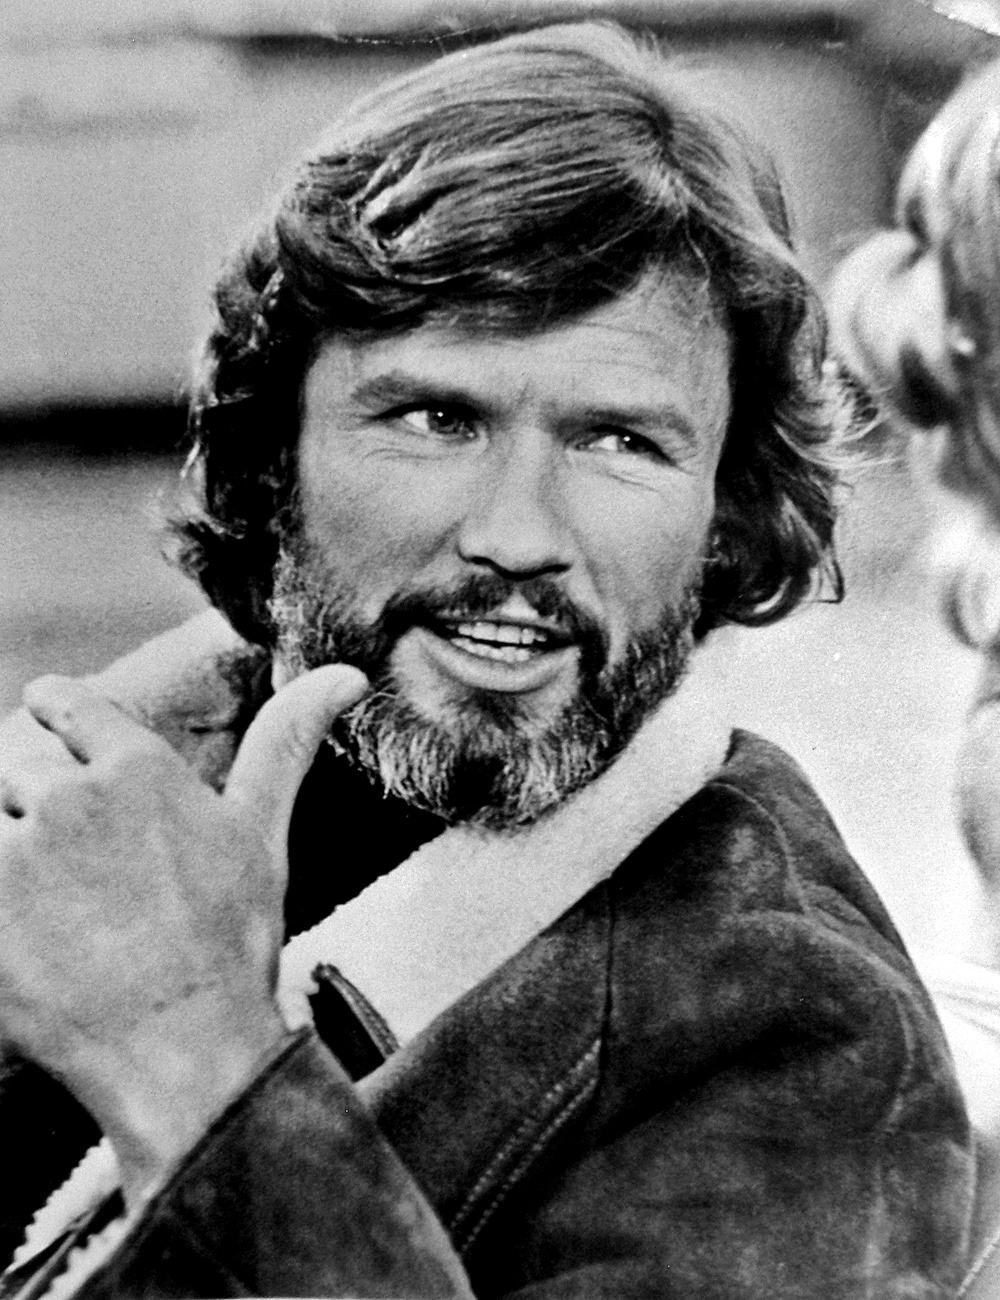 Accurate diagnosis is key to effective Alzheimer's treatment. Singer songwriter Kris Kristofferson lived with a dementia diagnosis for two years before being diagnosed with lyme disease.